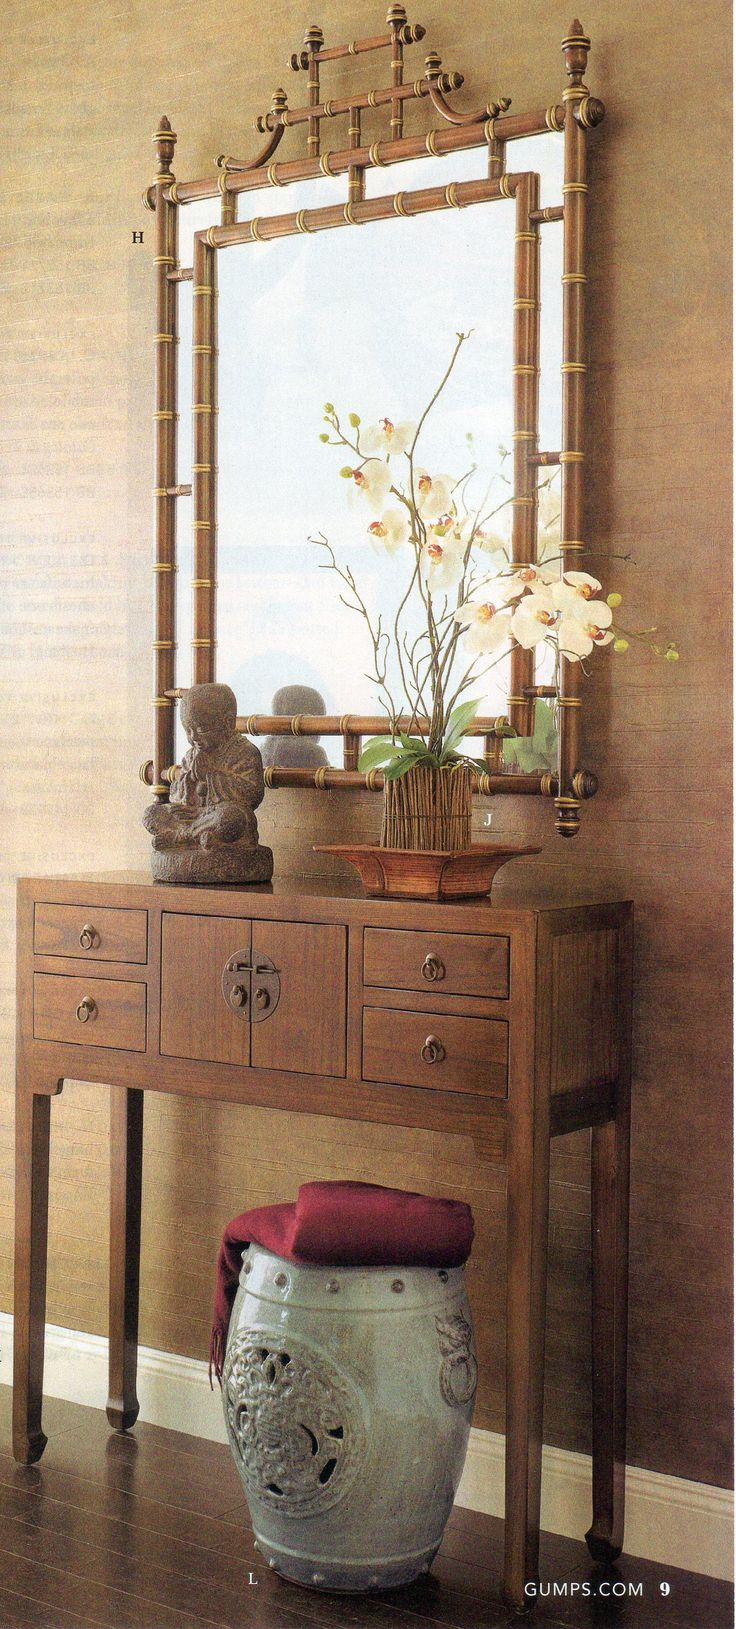 love the whole thing - Asian inspired look - console, and mirror and the colors, and decor